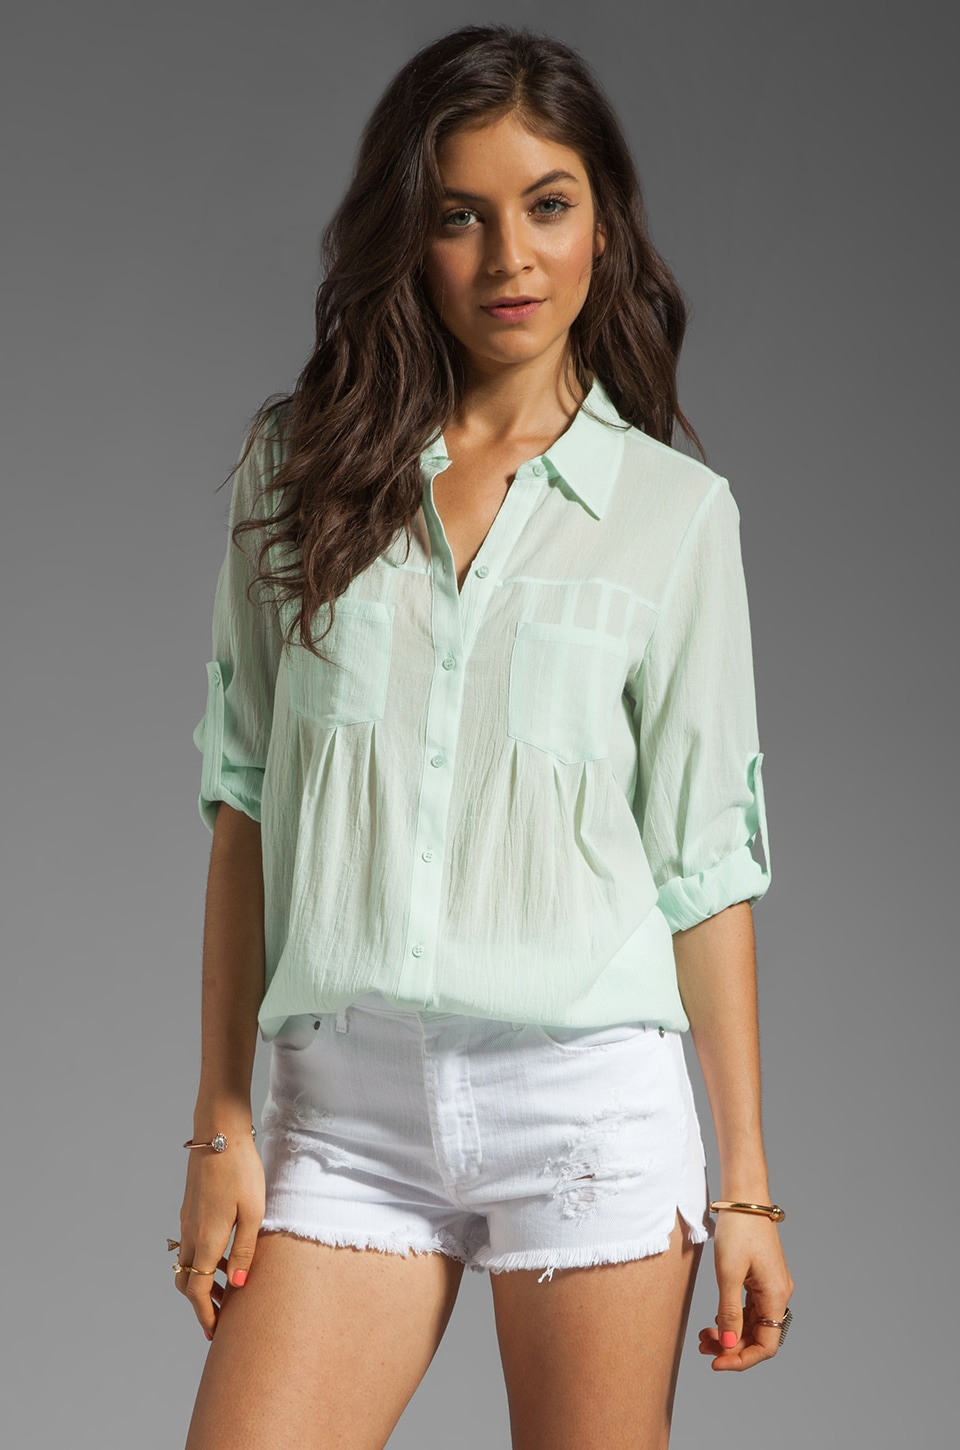 Joie Pinot Button Up in Pale Aqua